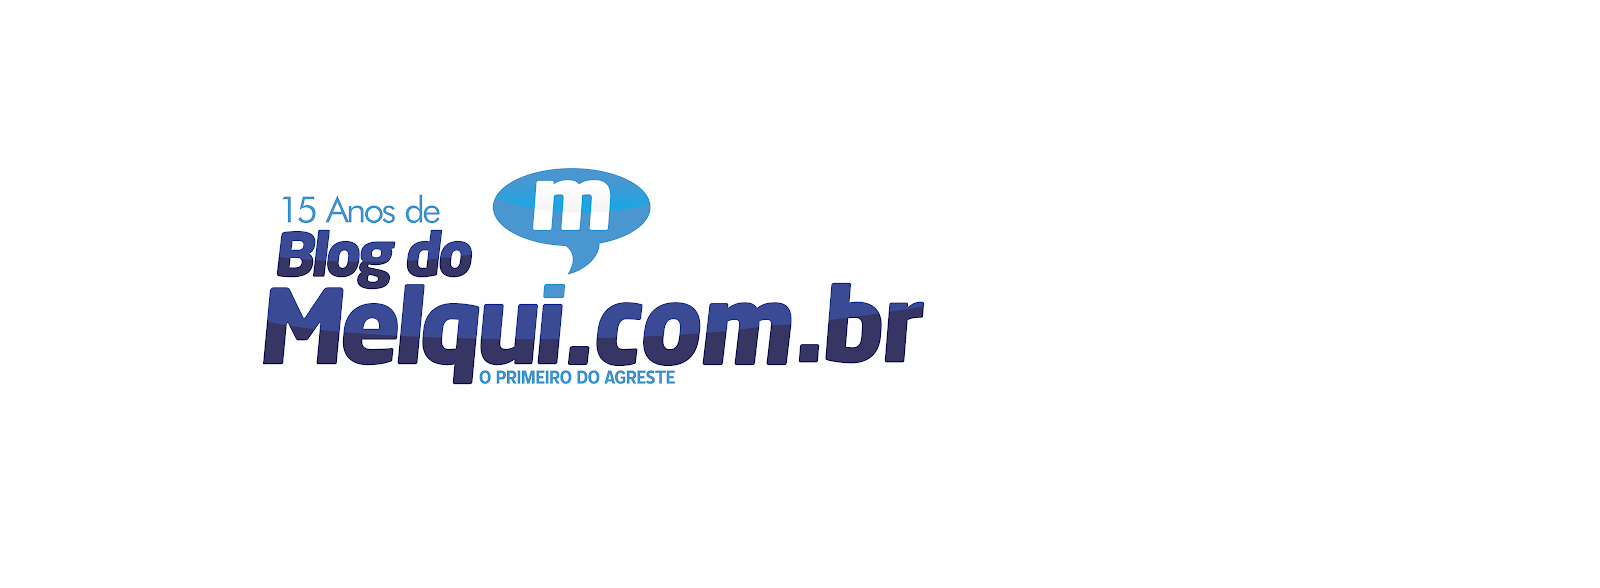 Blog do Melqui